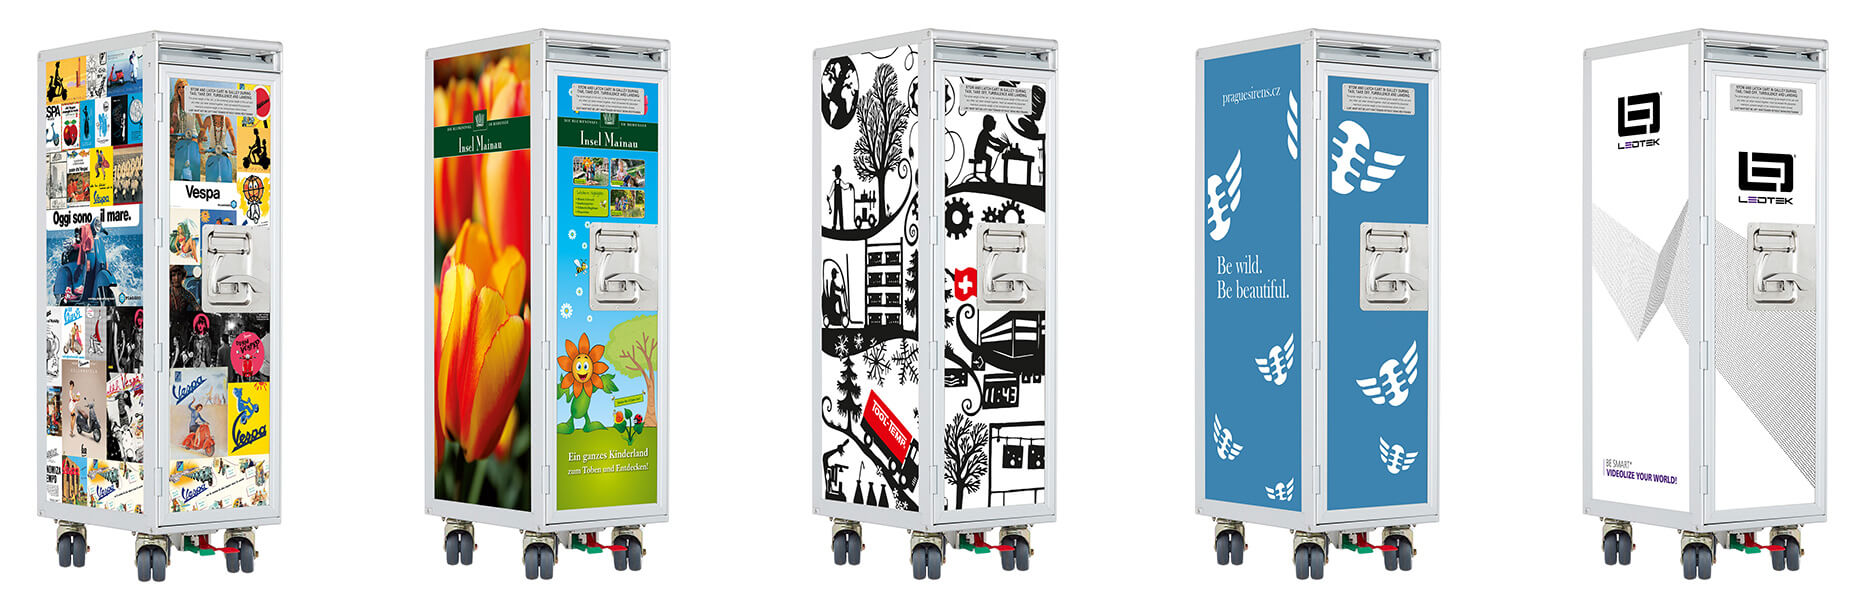 Flugzeugtrolleys im Corporate Design